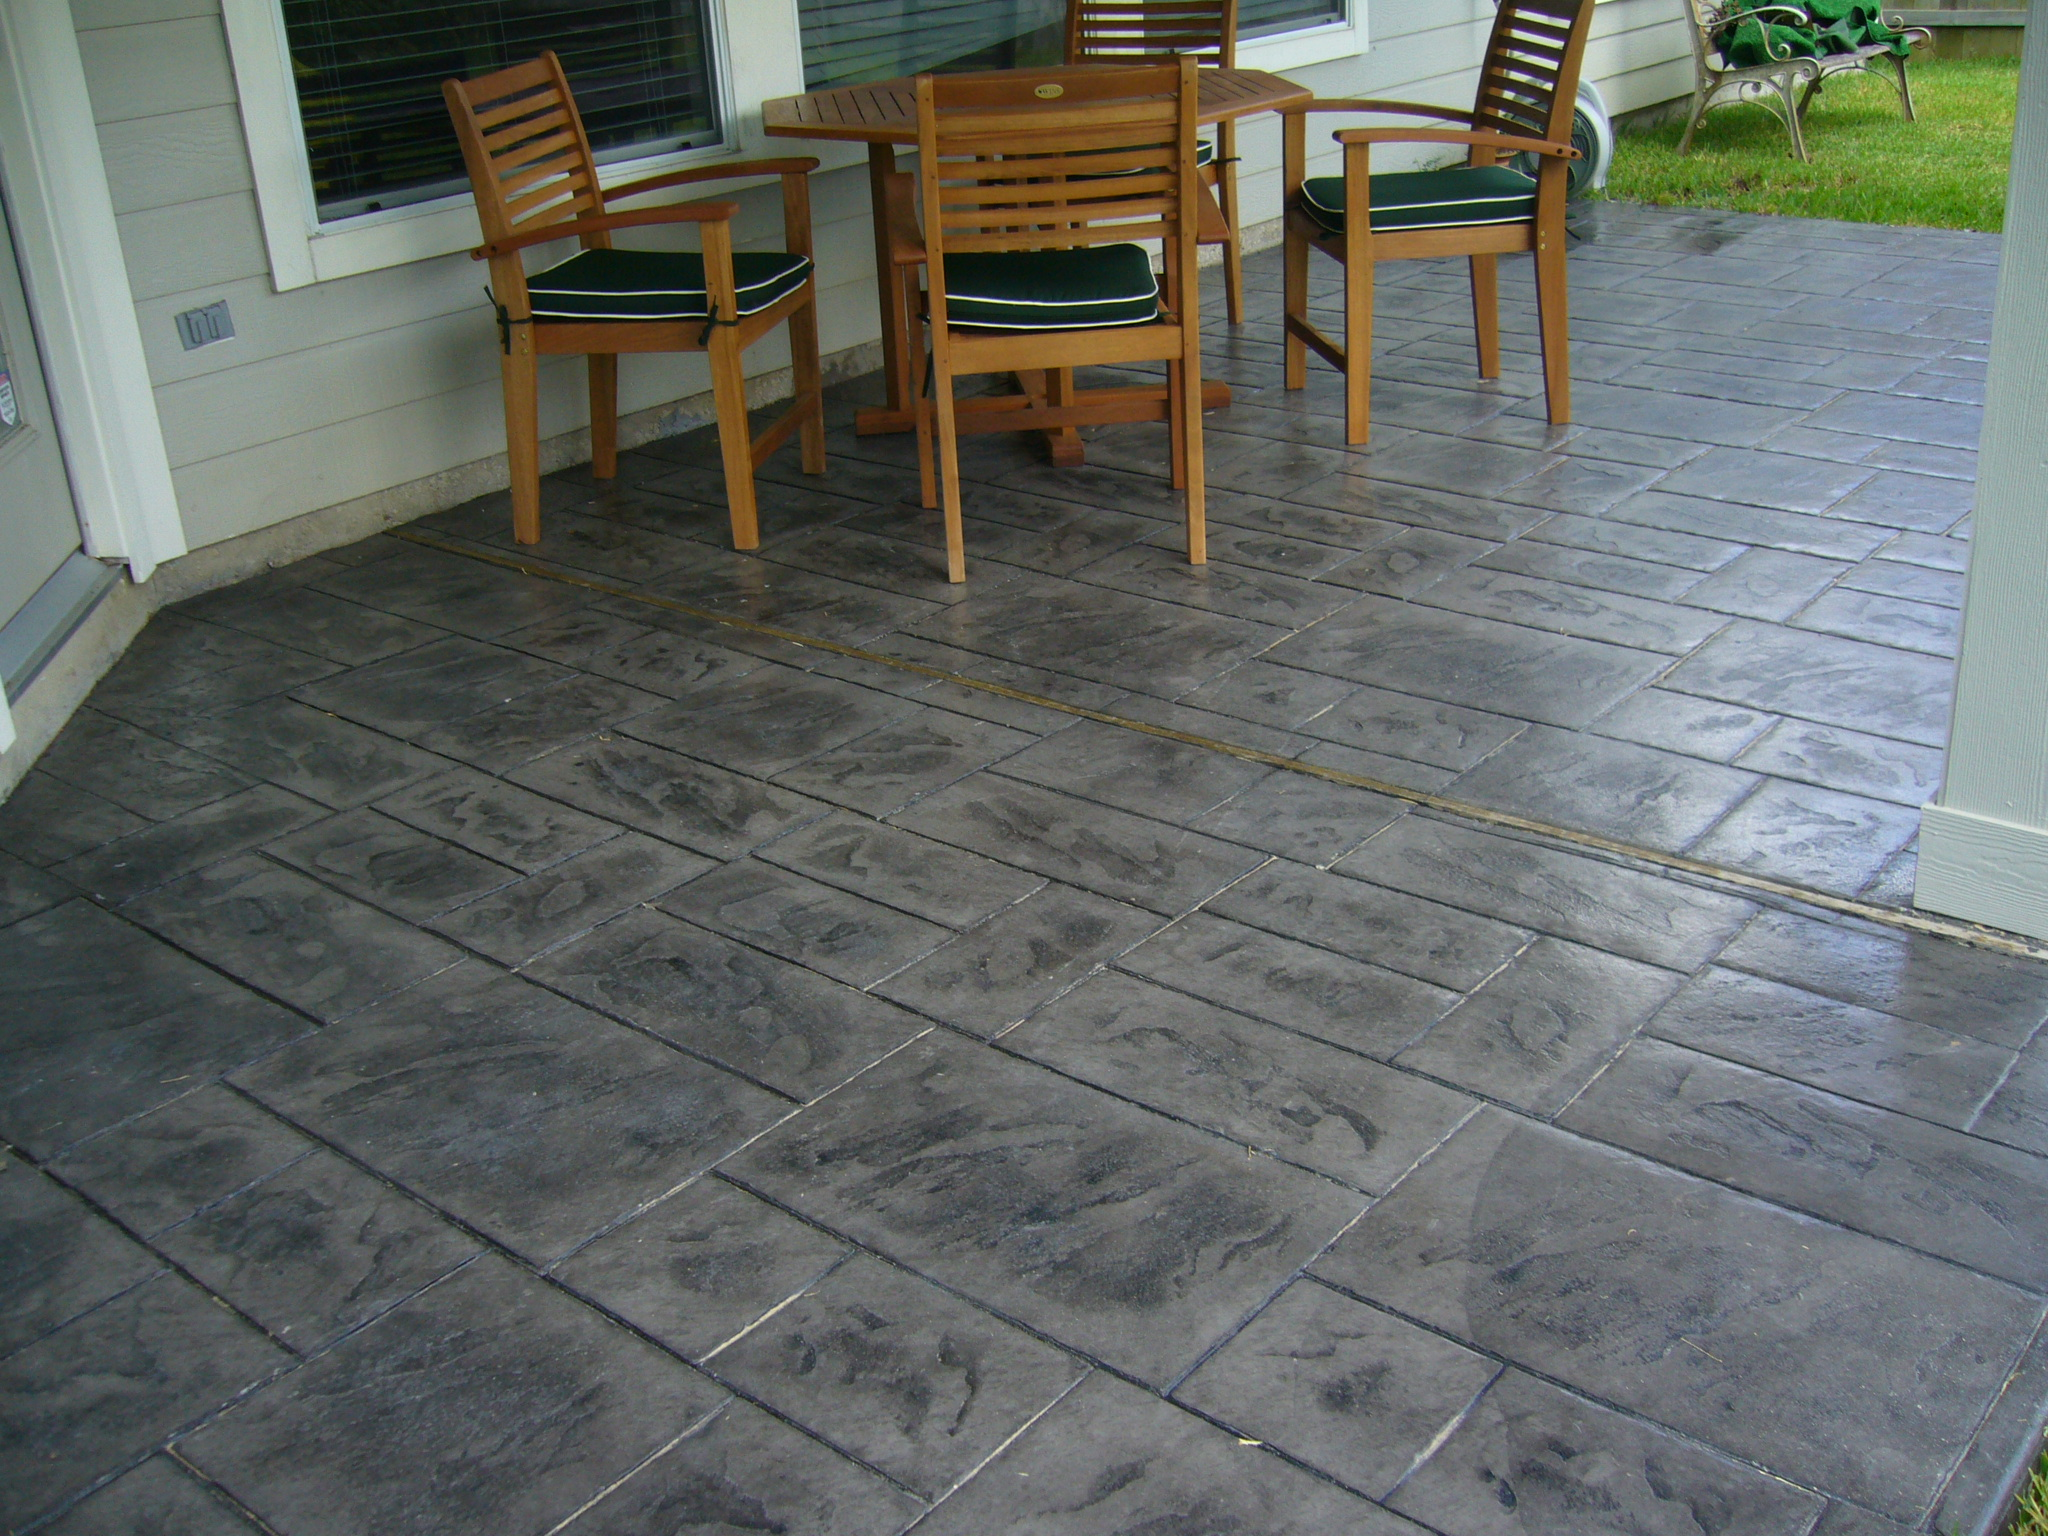 Concrete Patio Design Ideas concrete patio ideas for small backyards fine small backyard concrete patio designs 12 according inspiration article Stamped Concrete Patio Design Sterling Hts Mi Concrete Patio Ideas